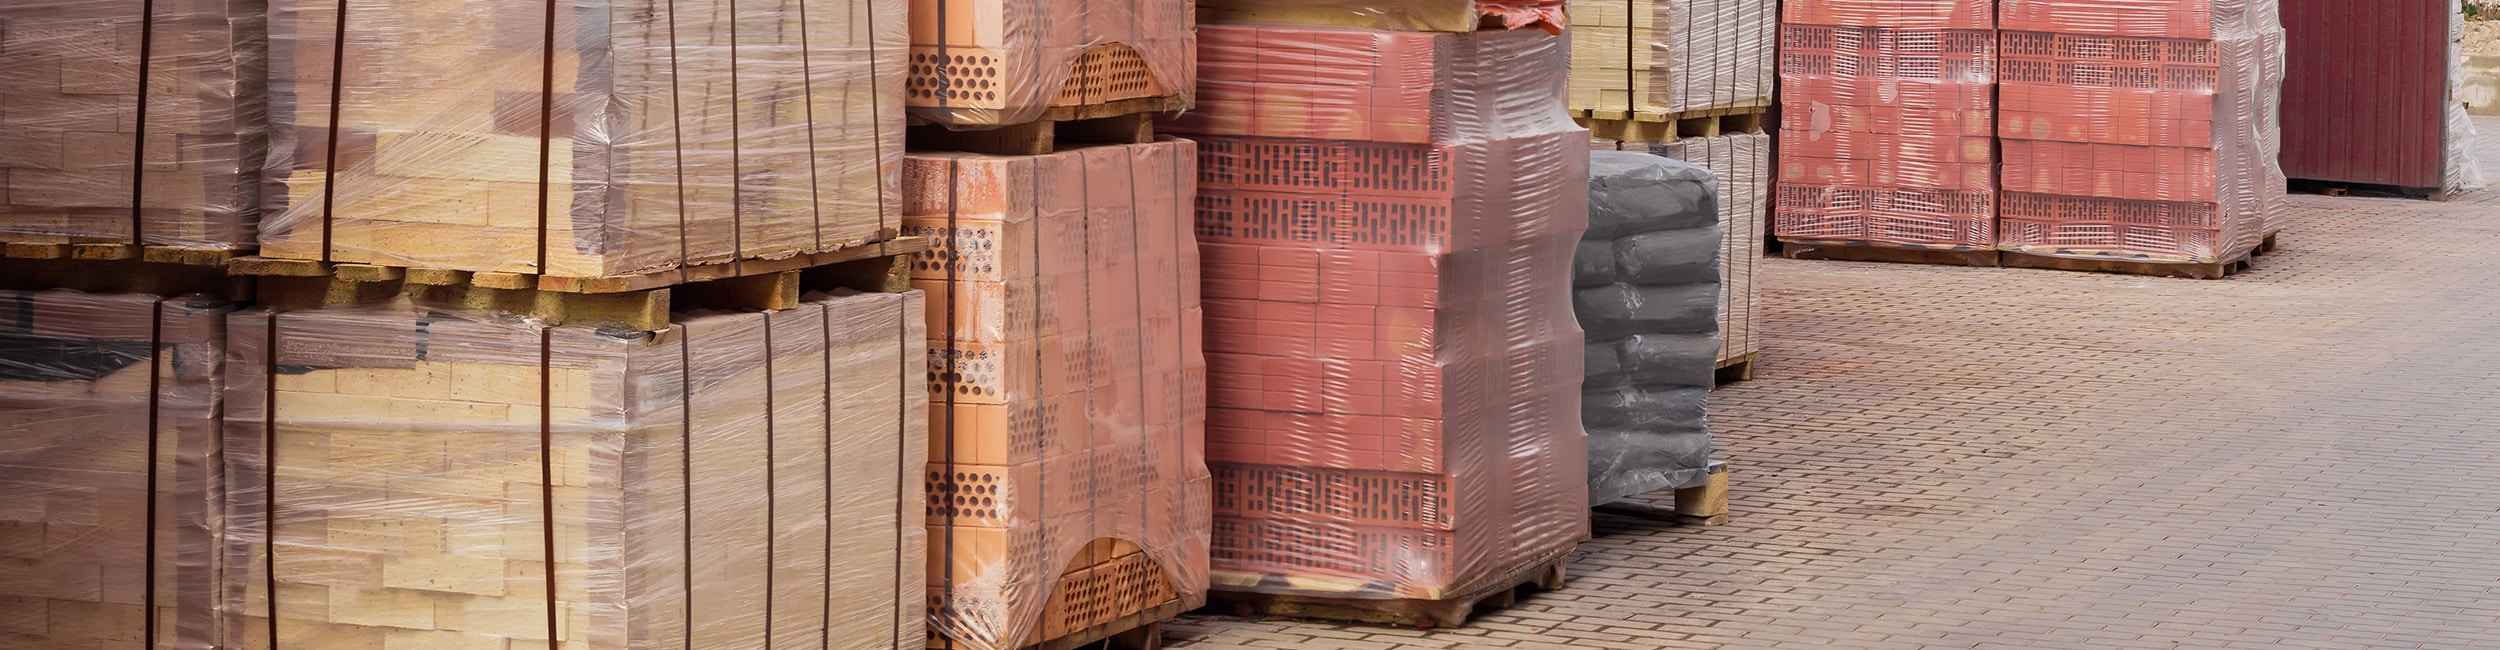 Construction Industry, pallets of bricks.